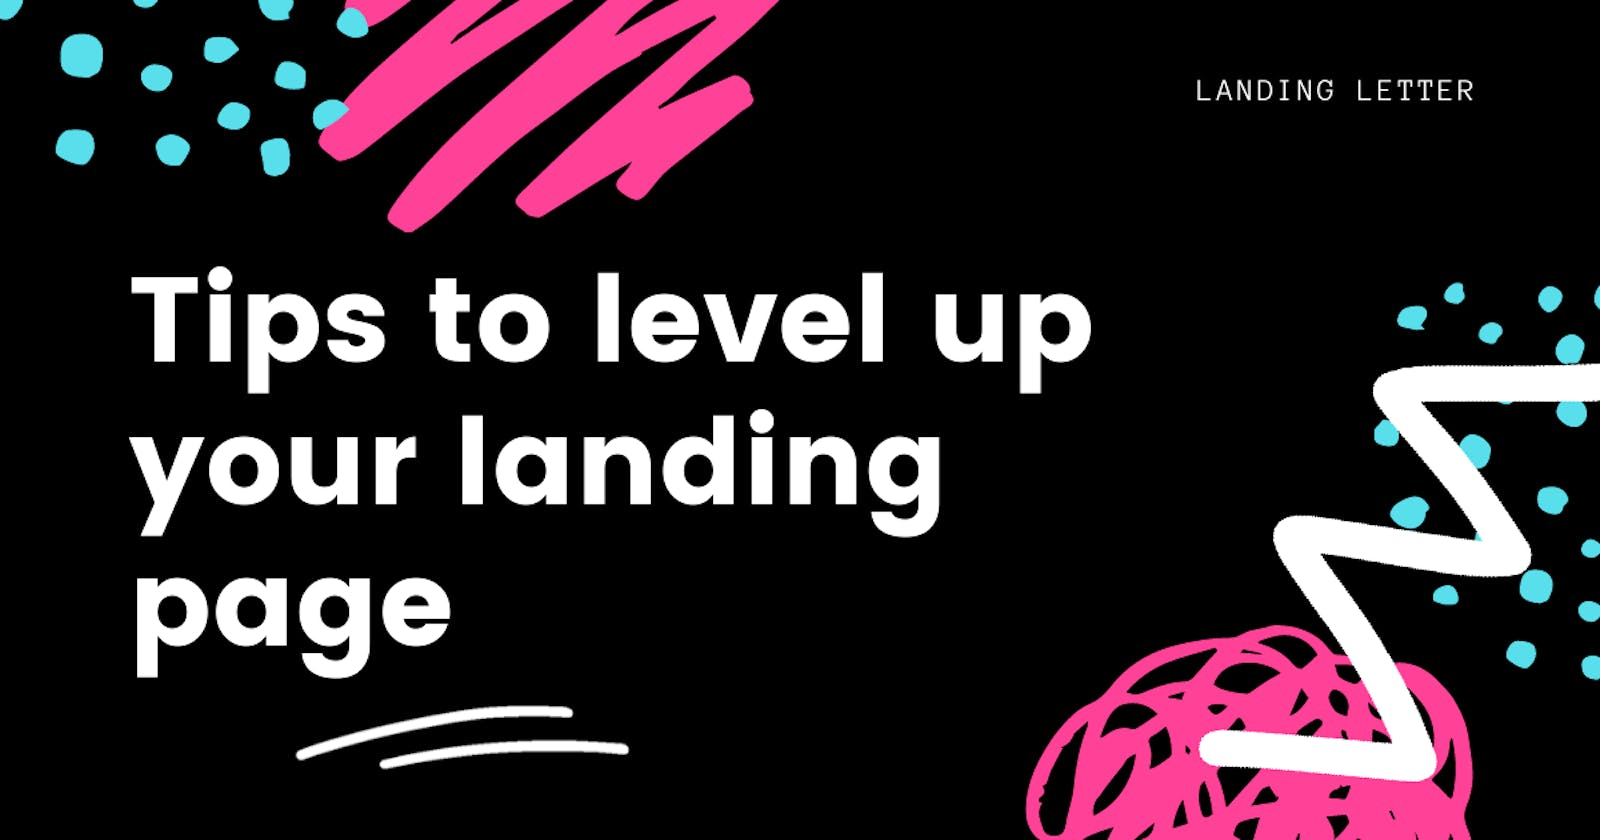 Tips to level up your landing page